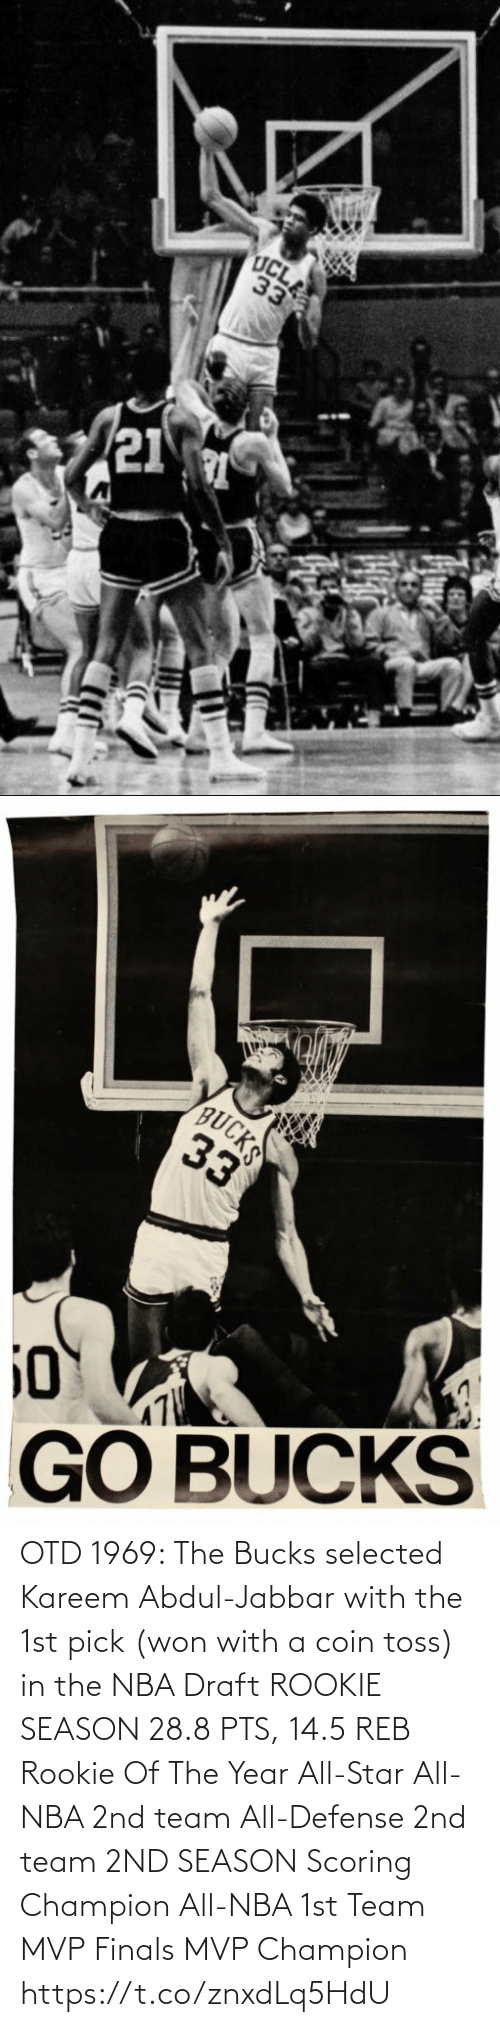 All Star, Finals, and Memes: OTD 1969: The Bucks selected Kareem Abdul-Jabbar with the 1st pick (won with a coin toss) in the NBA Draft   ROOKIE SEASON 28.8 PTS, 14.5 REB Rookie Of The Year All-Star All-NBA 2nd team All-Defense 2nd team  2ND SEASON Scoring Champion All-NBA 1st Team MVP Finals MVP Champion https://t.co/znxdLq5HdU